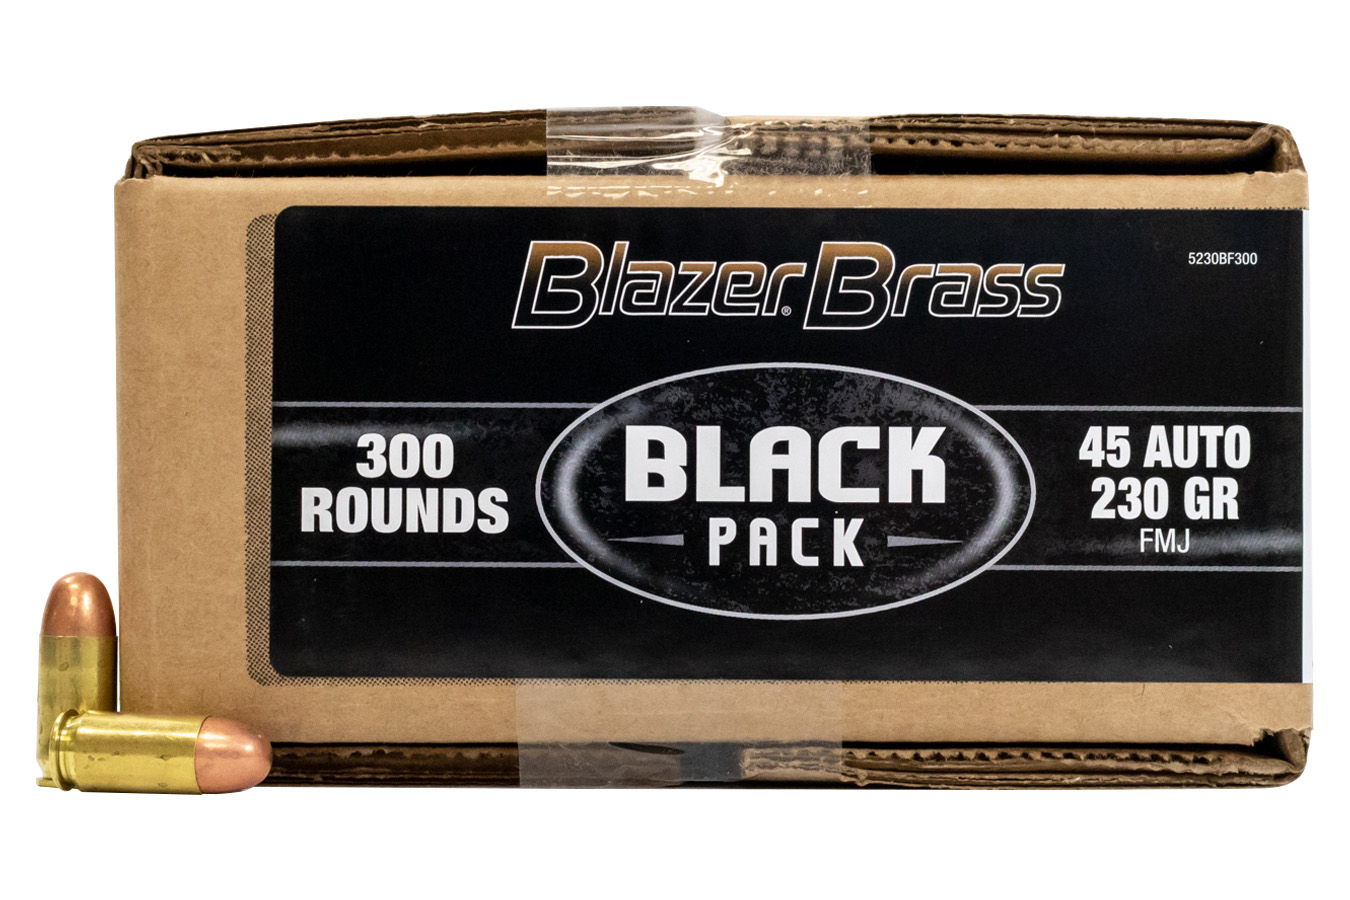 45 AUTO 230 GR FMJ 300 RD BLACK PACK